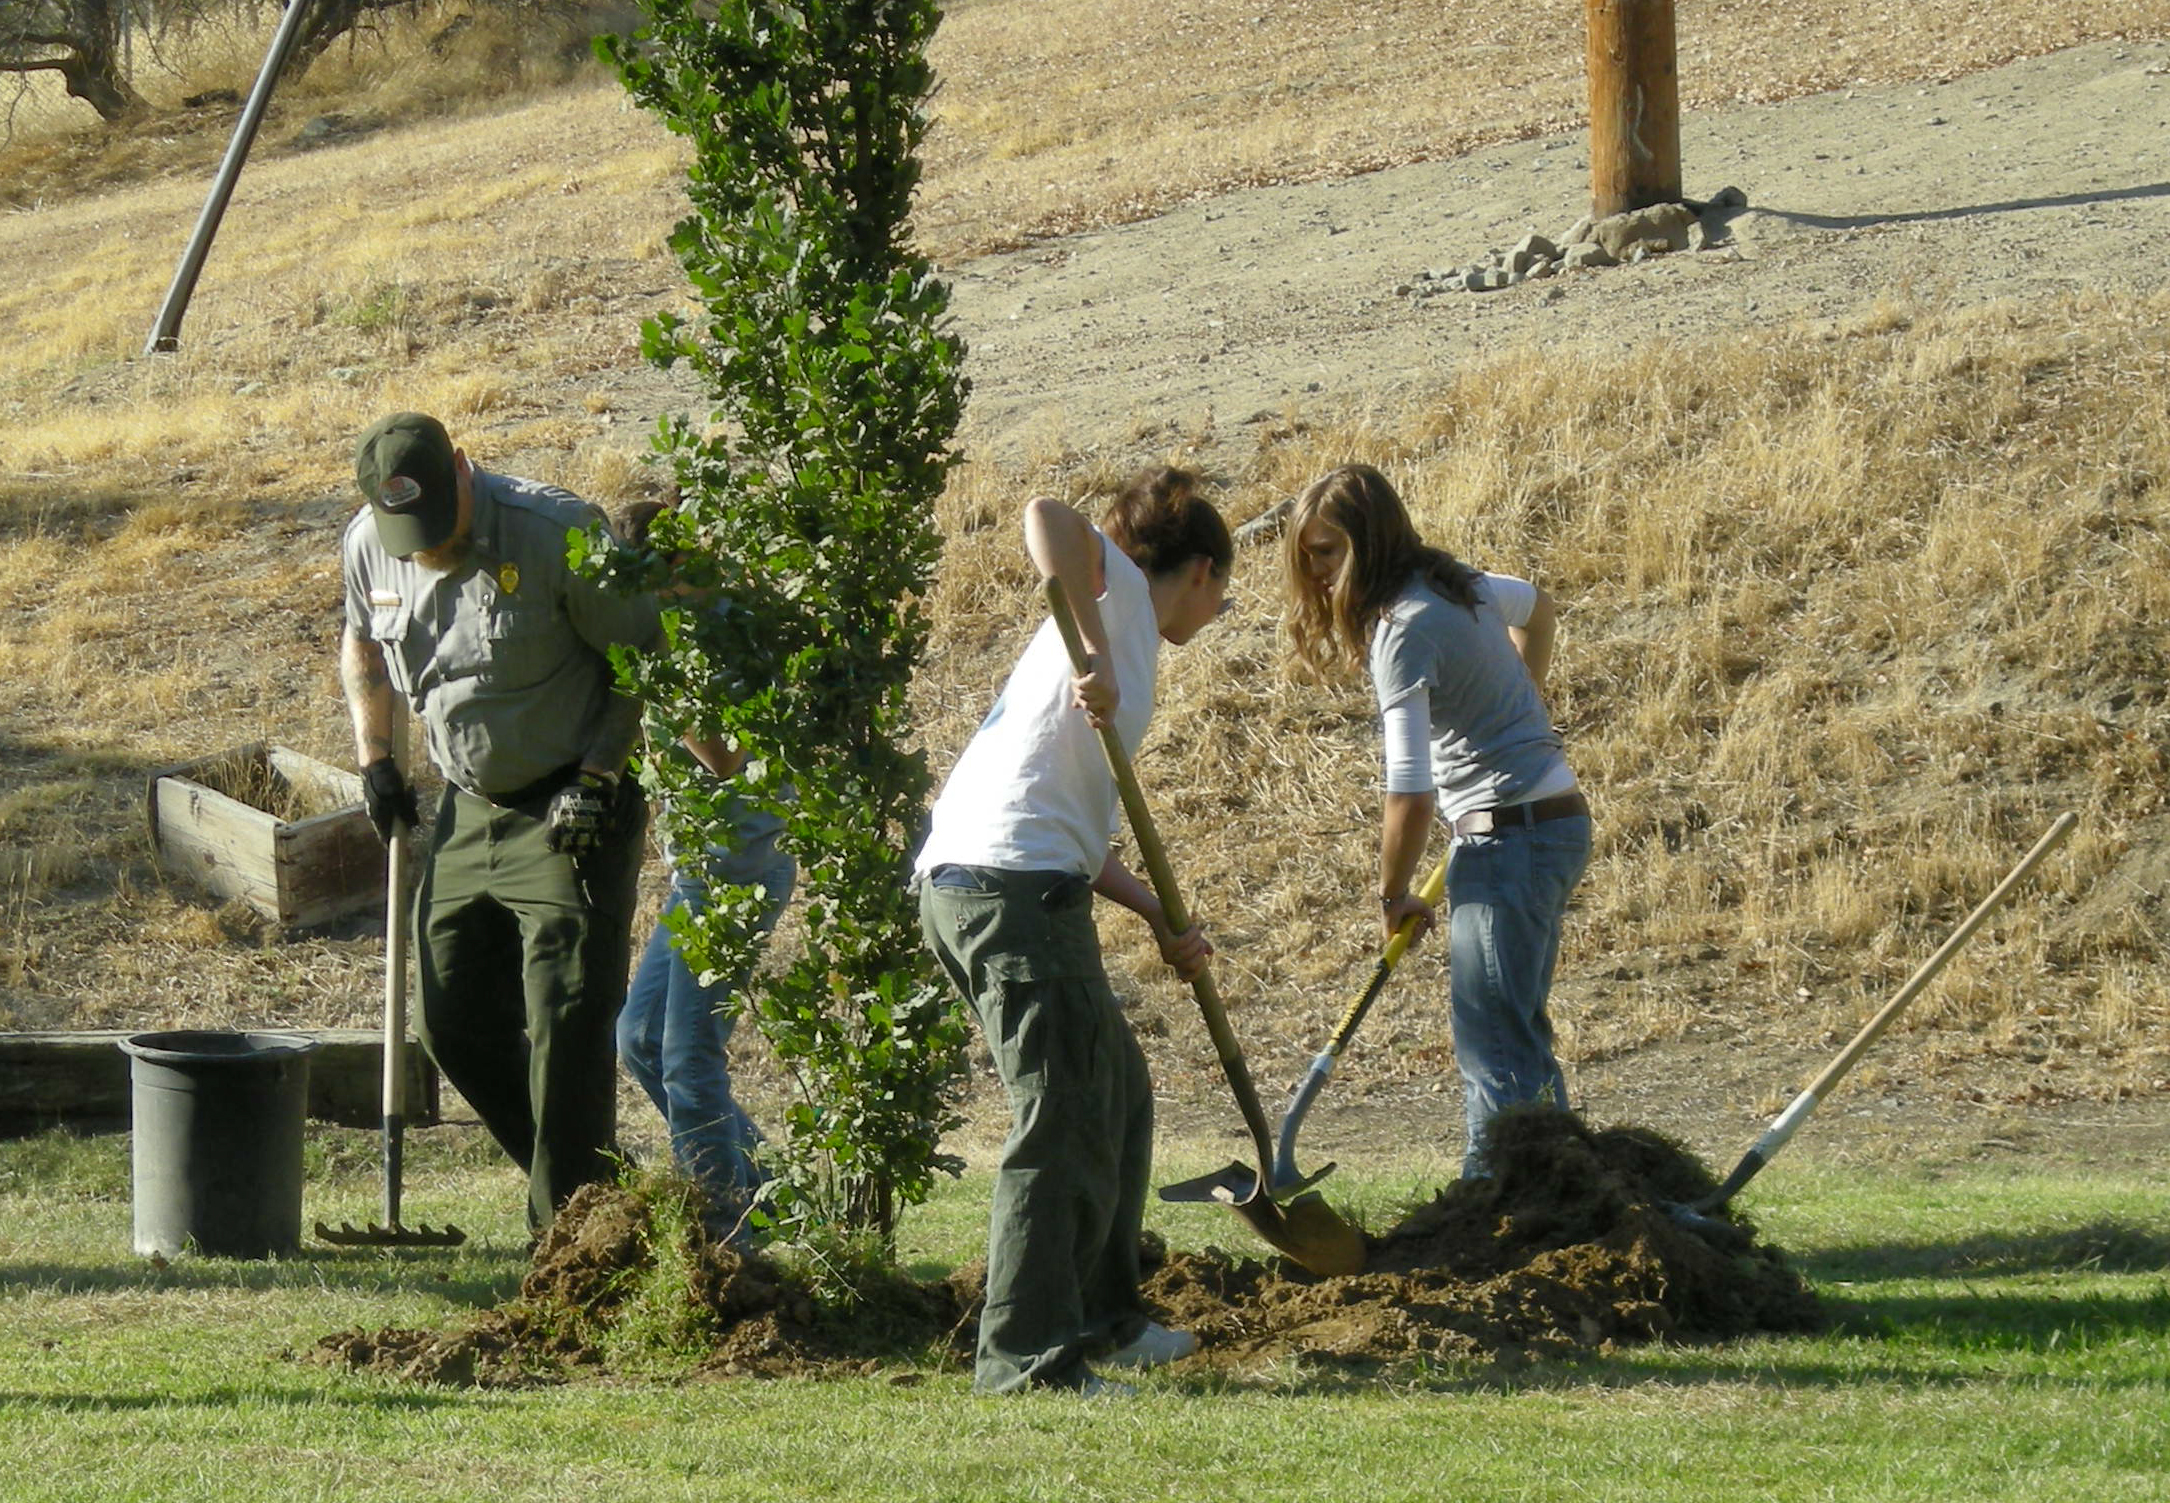 Volunteers plant a tree for National Public Lands Day, Pine Flat Lake, California, Sept. 26, 2009 | Photo courtesy of United States Army, St. George News